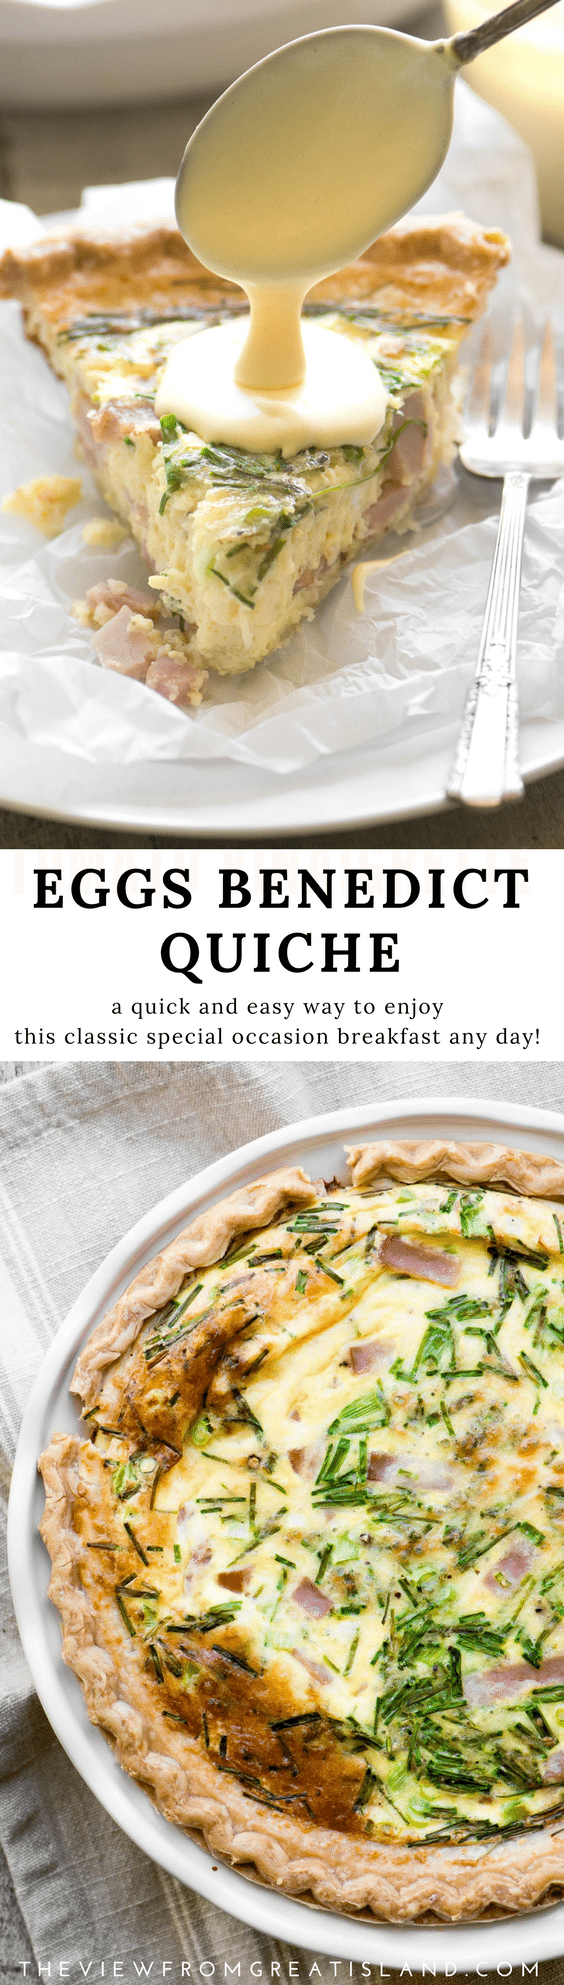 Eggs Benedict Quiche with Hollandaise Sauce ~ this brilliant hack lets you enjoy your favorite luxury breakfast in easy sliceable form ~ complete with little chunks of Canadian bacon, and a quick and creamy hollandaise sauce! #brunch #breakfast #eggsbenedict #hollandaisesauce #quiche #mother'sday #easter #easterbrunch #breakfastinbed #canadianbacon #eggs #hamquiche #easyhollandaisesauce